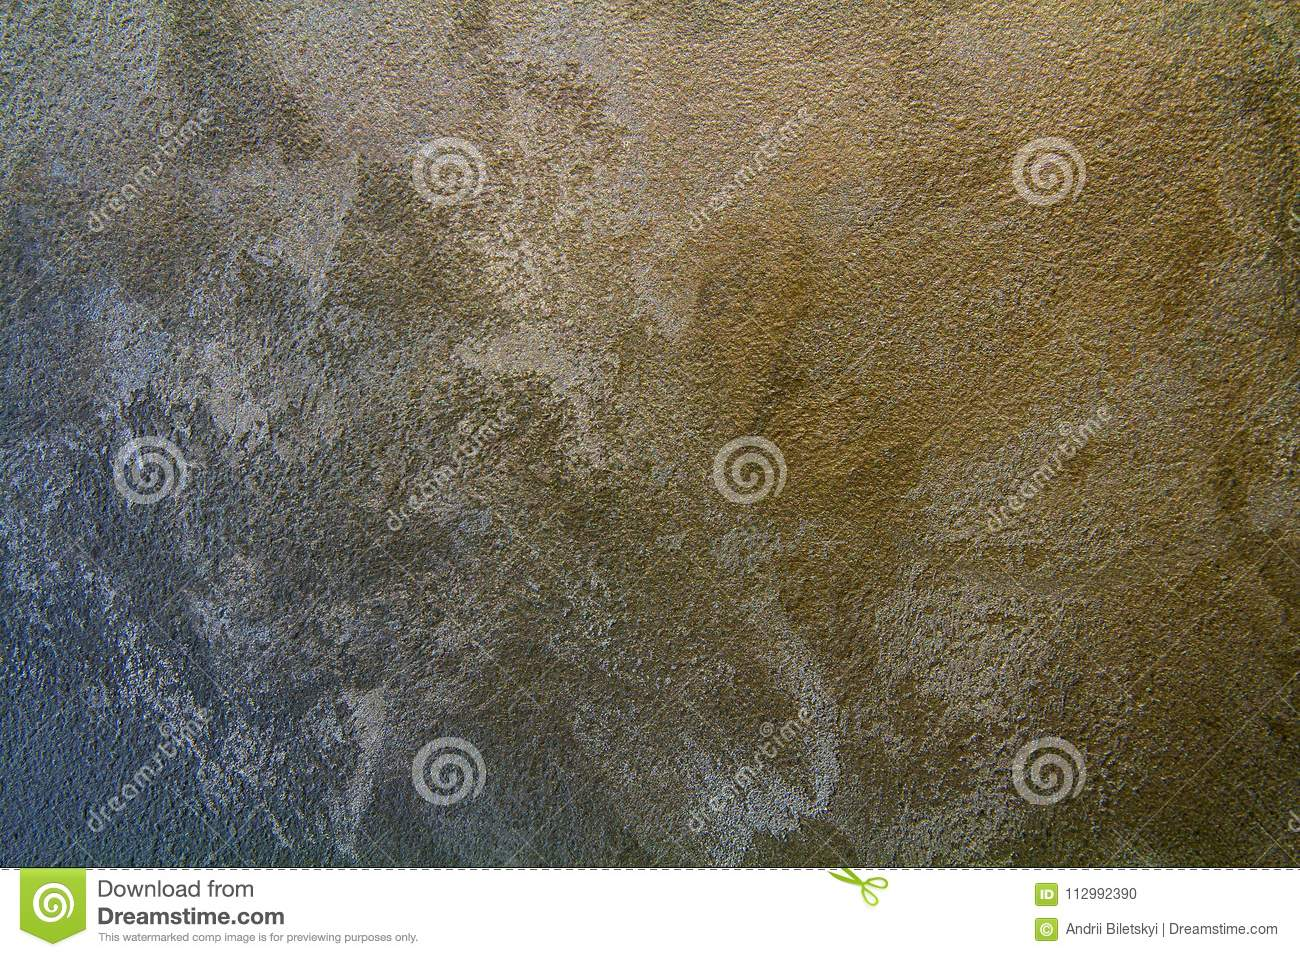 Vintage or grunge gray stucco background of natural cement or stone old texture as a retro pattern wall.